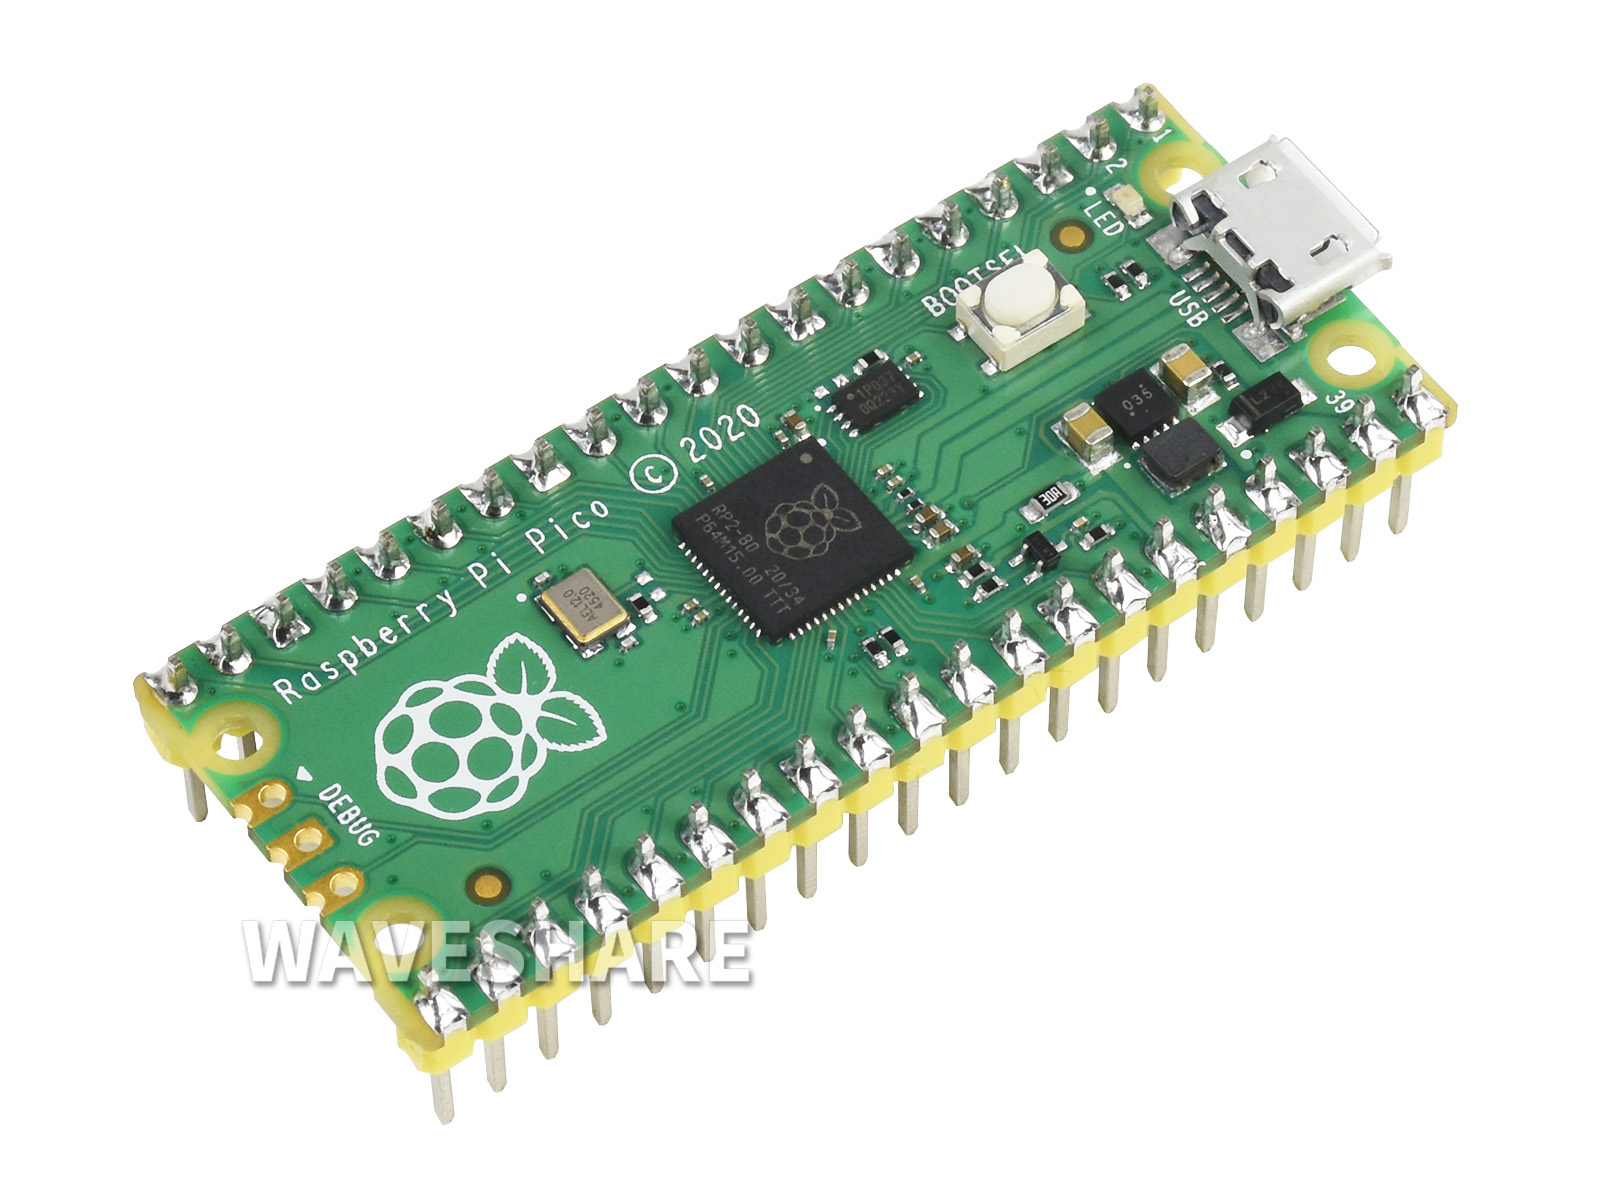 with Starter-Kit 5 Items Waveshare Raspberry Pi Pico A Low-Cost High-Performance Microcontroller Board with Flexible Digital Interfaces Incorporates RP2040 Microcontroller Chip